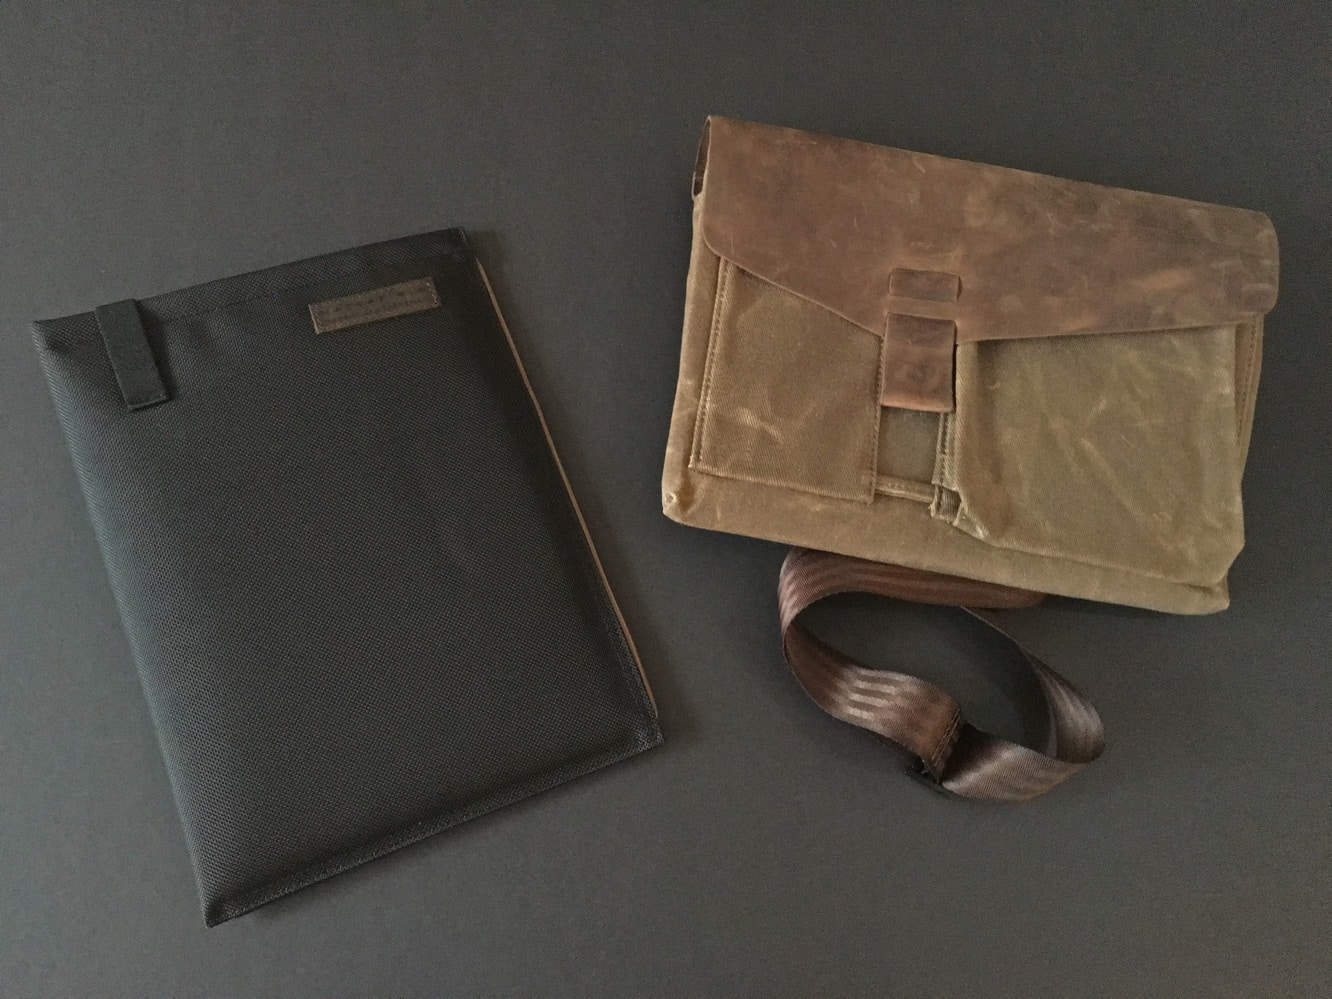 Waterfield Designs Dash Sleeve and Outback Solo for iPad Pro